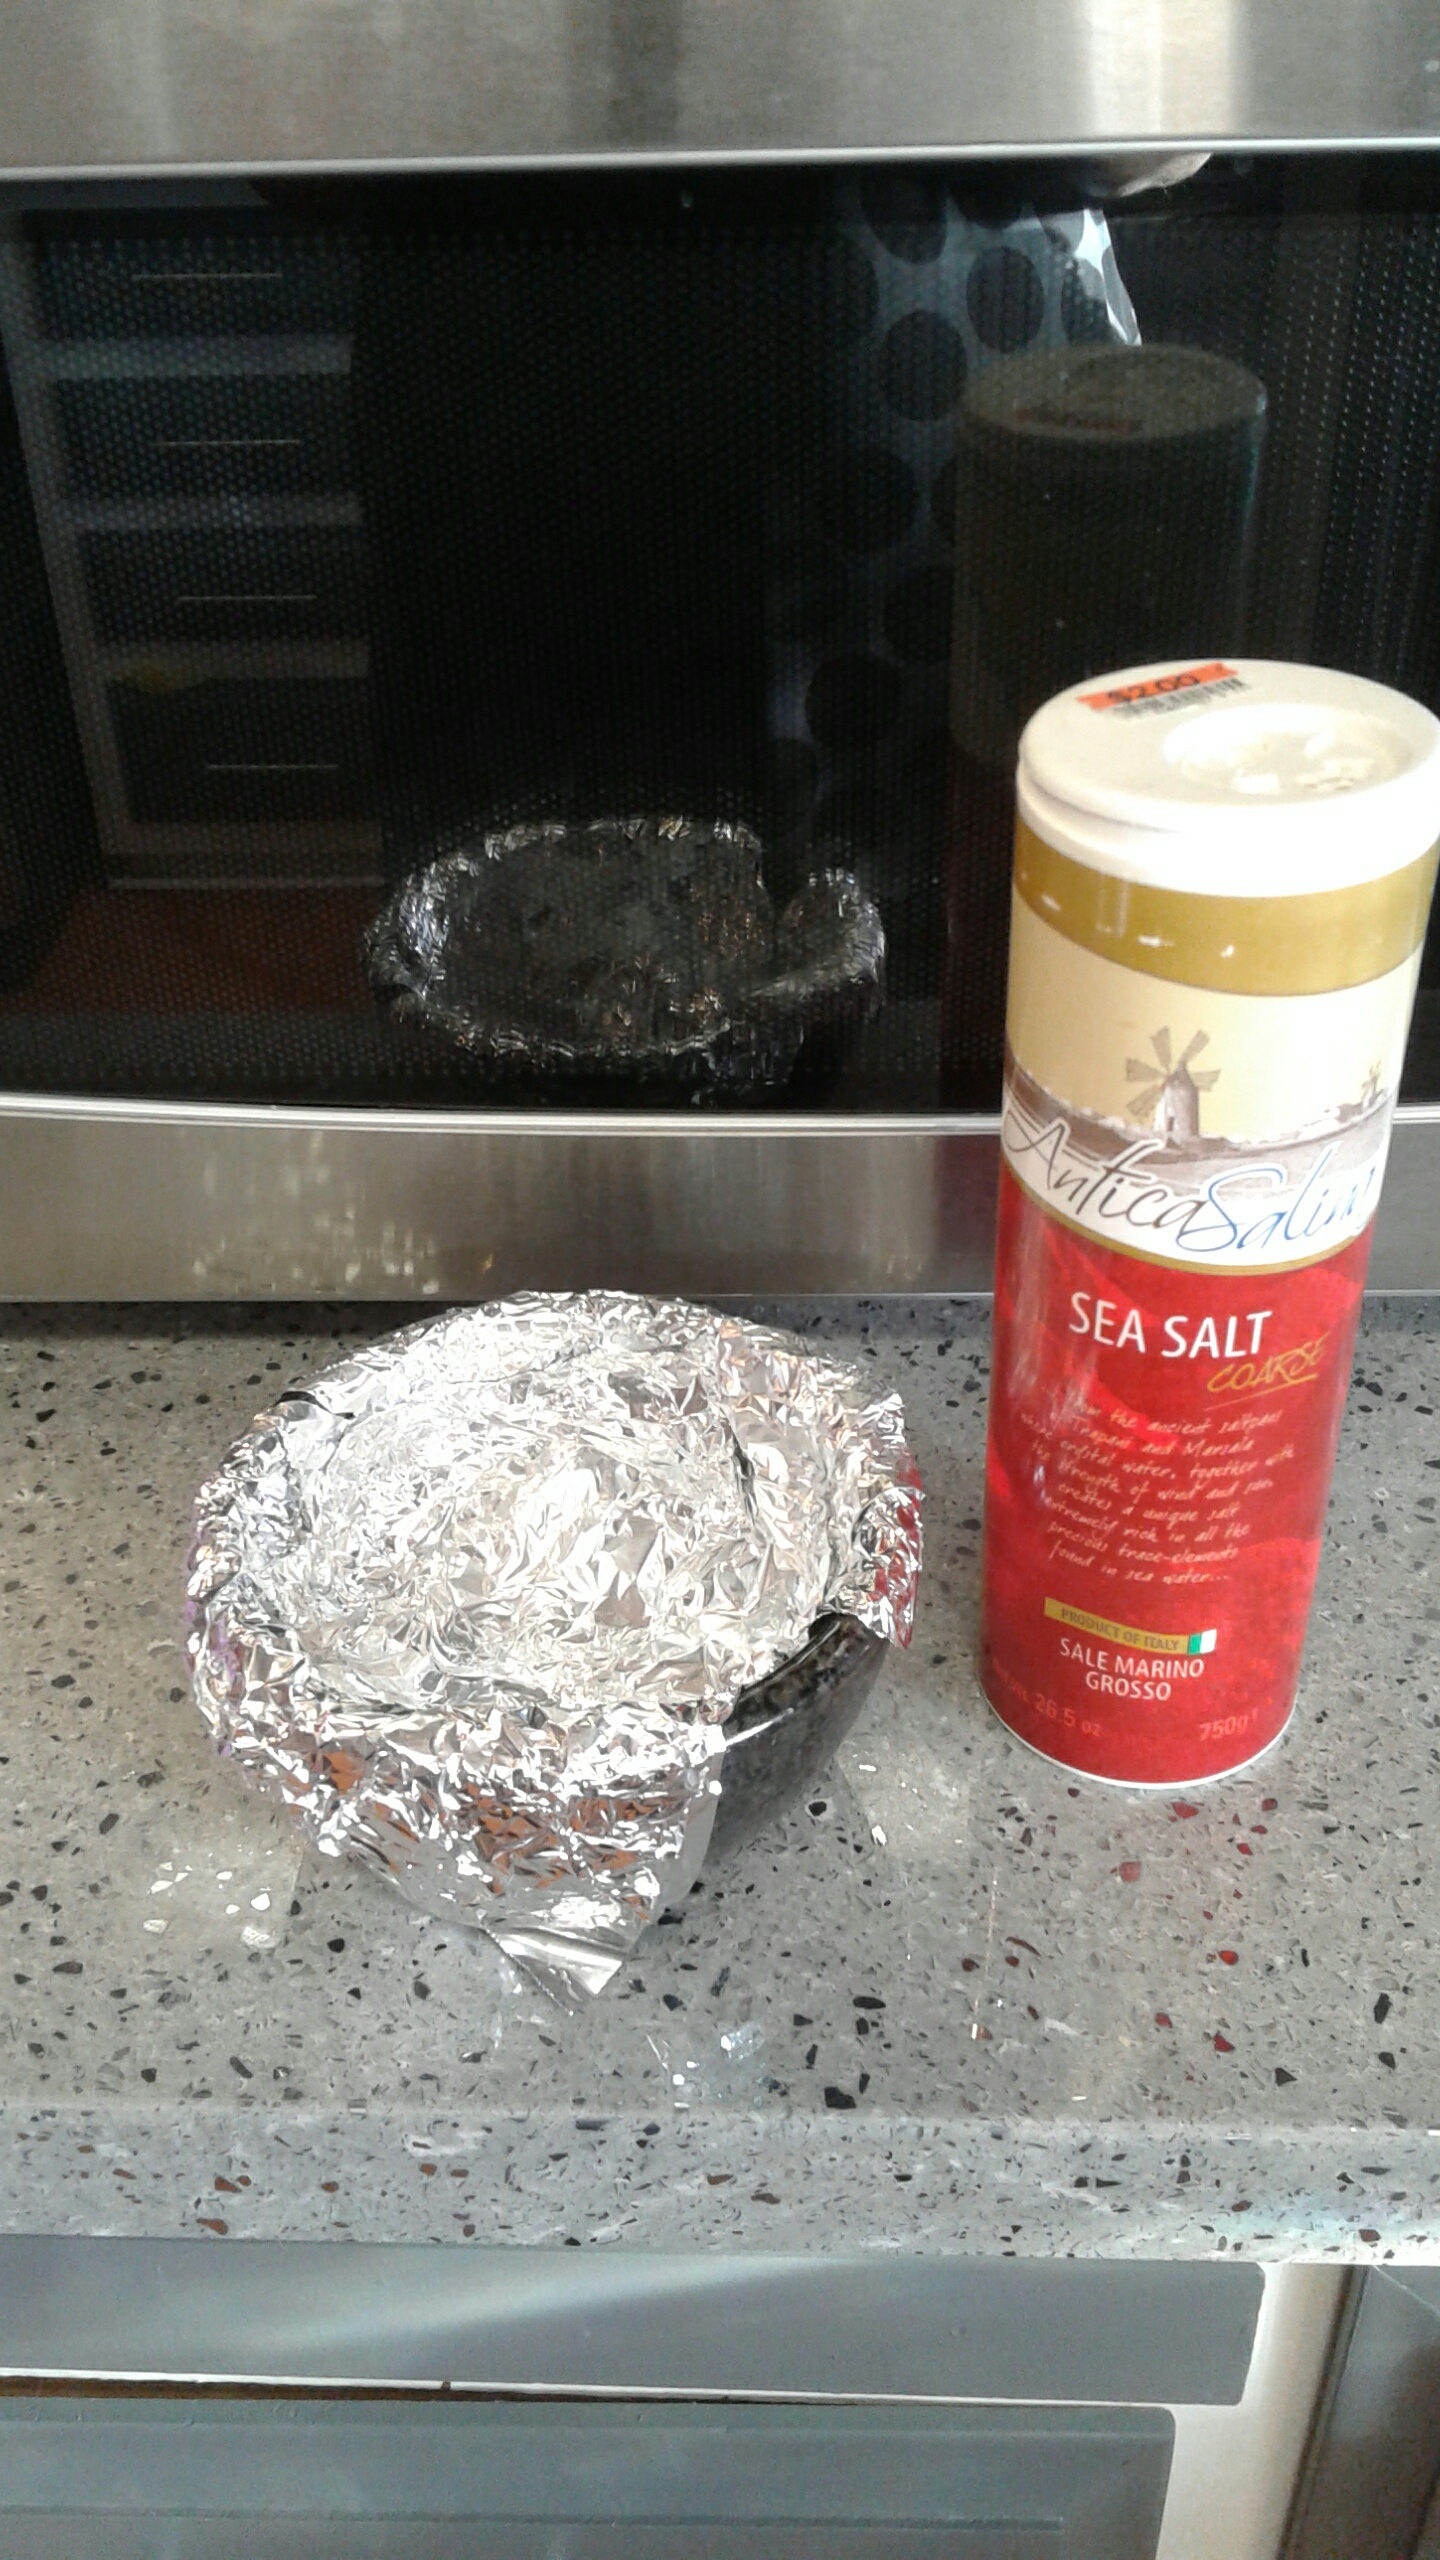 a bowl lined in aluminum foil next to a canister of sea salt